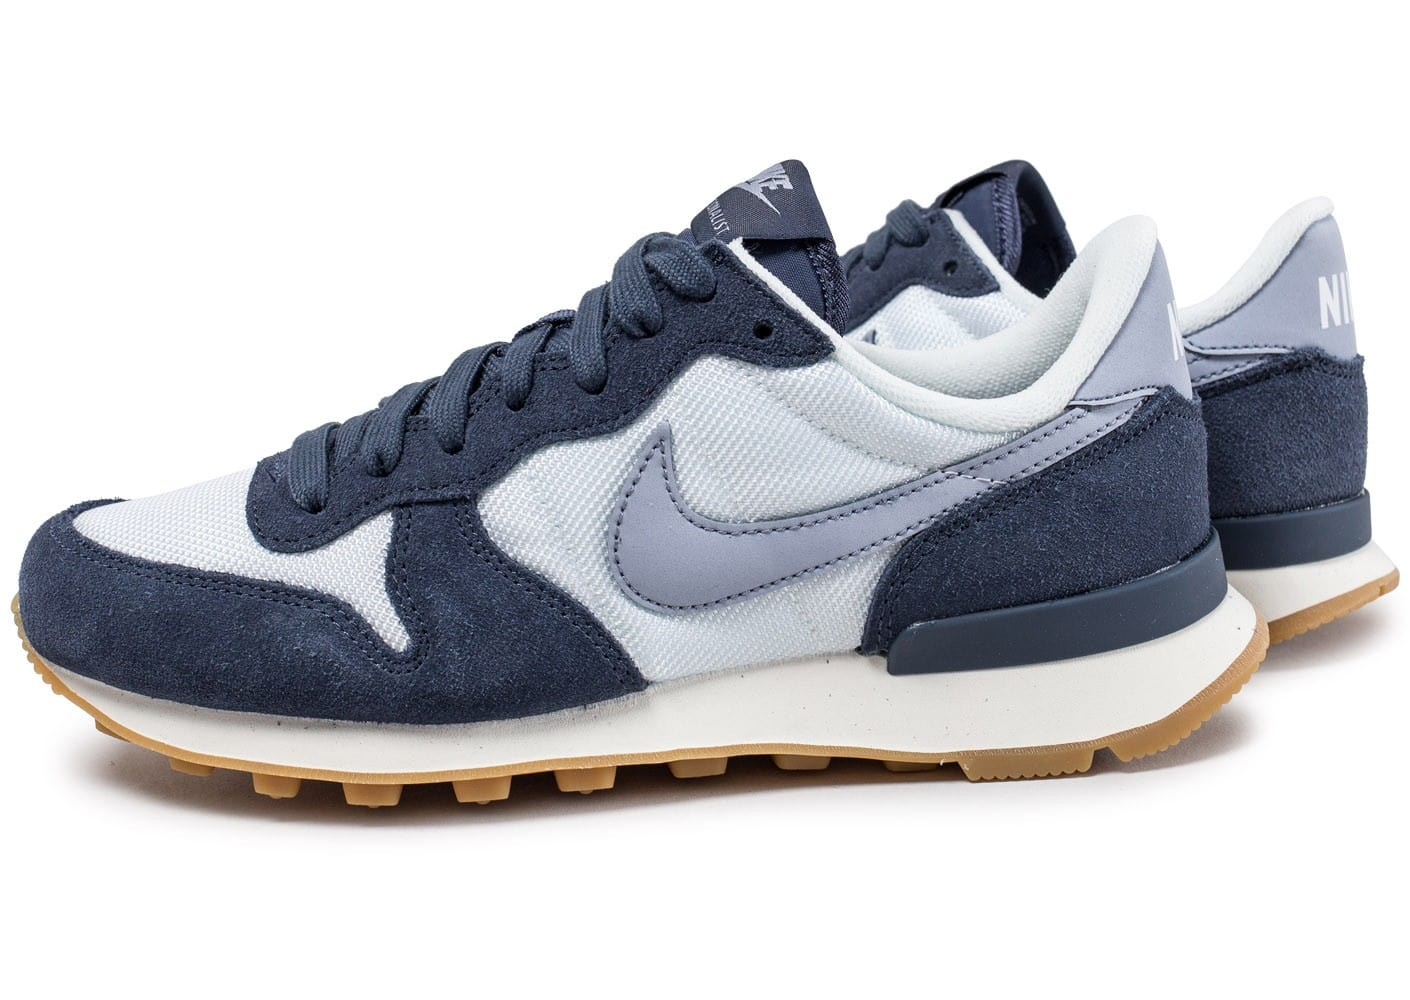 nike internationalist homme bleu marine